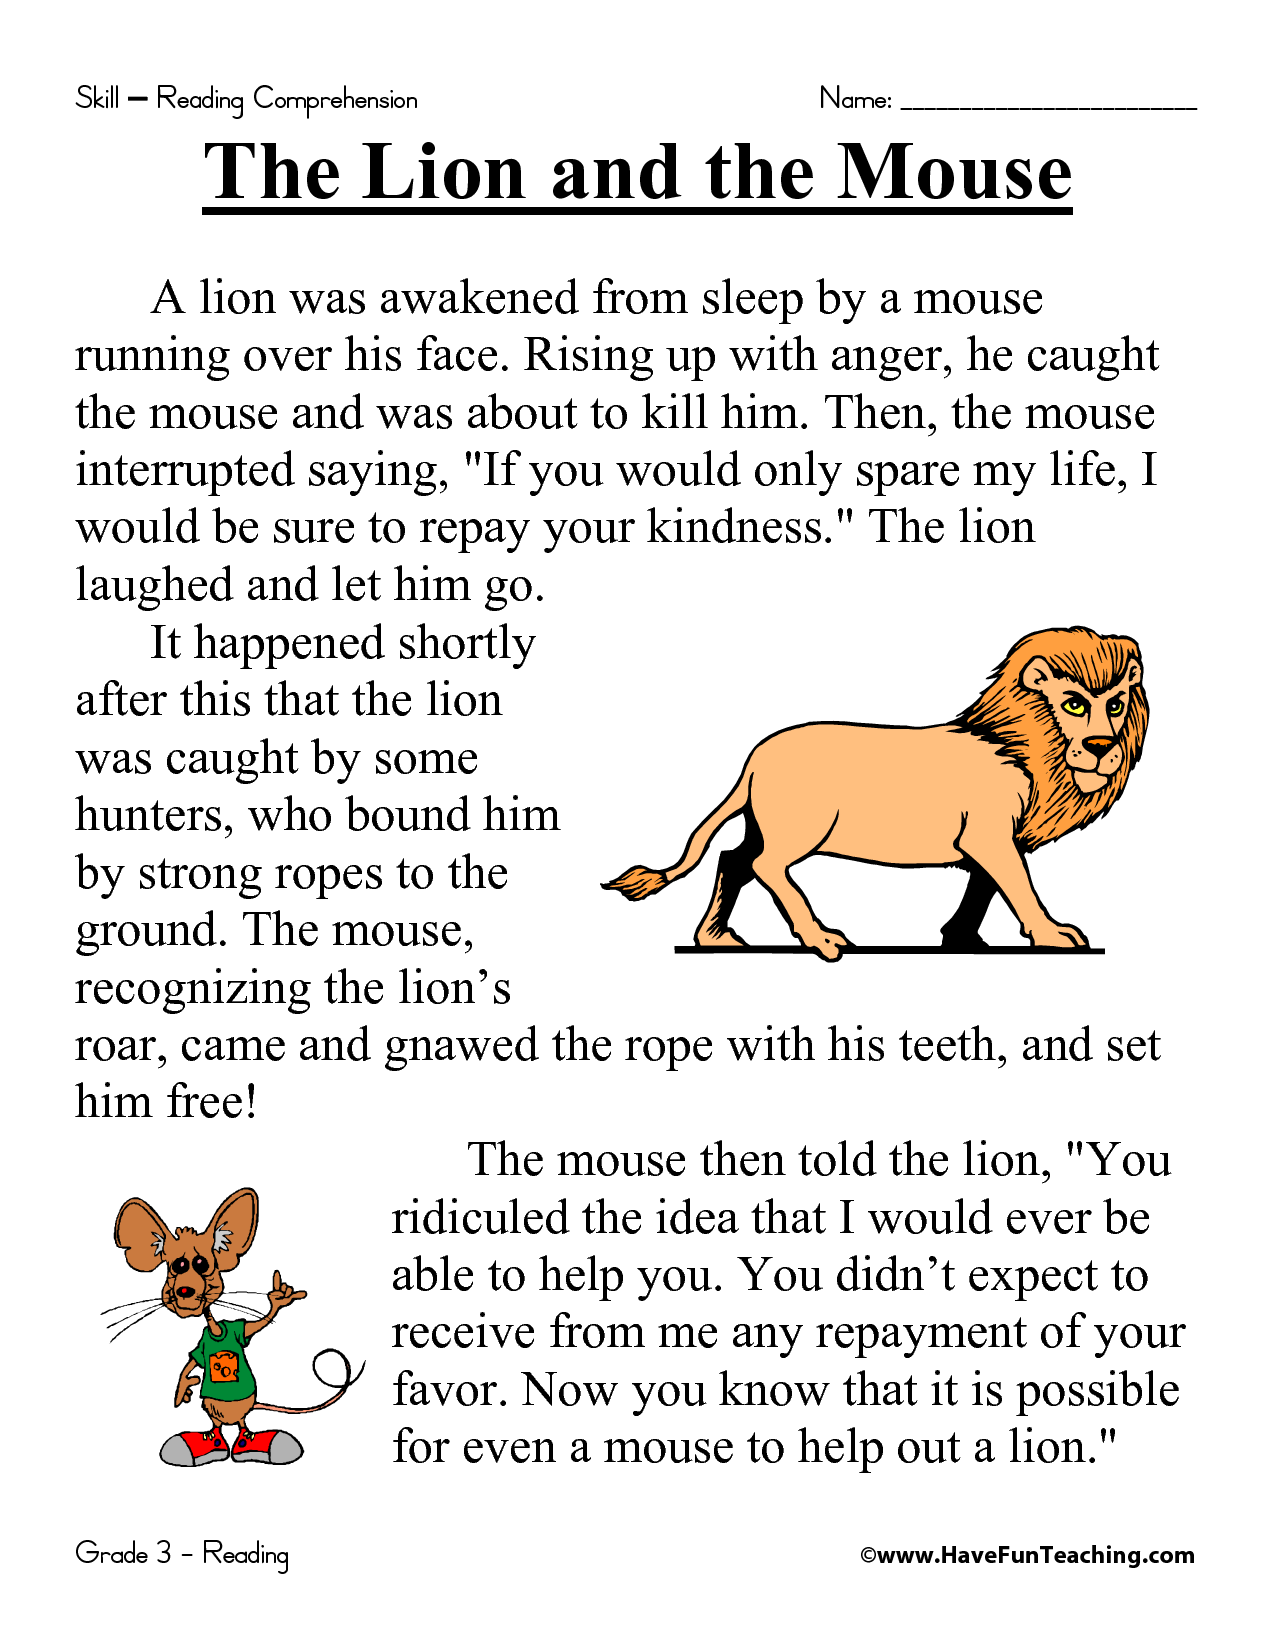 Worksheet Second Grade Reading Comprehension Stories first grade reading comprehension worksheets the lion and mouse worksheet